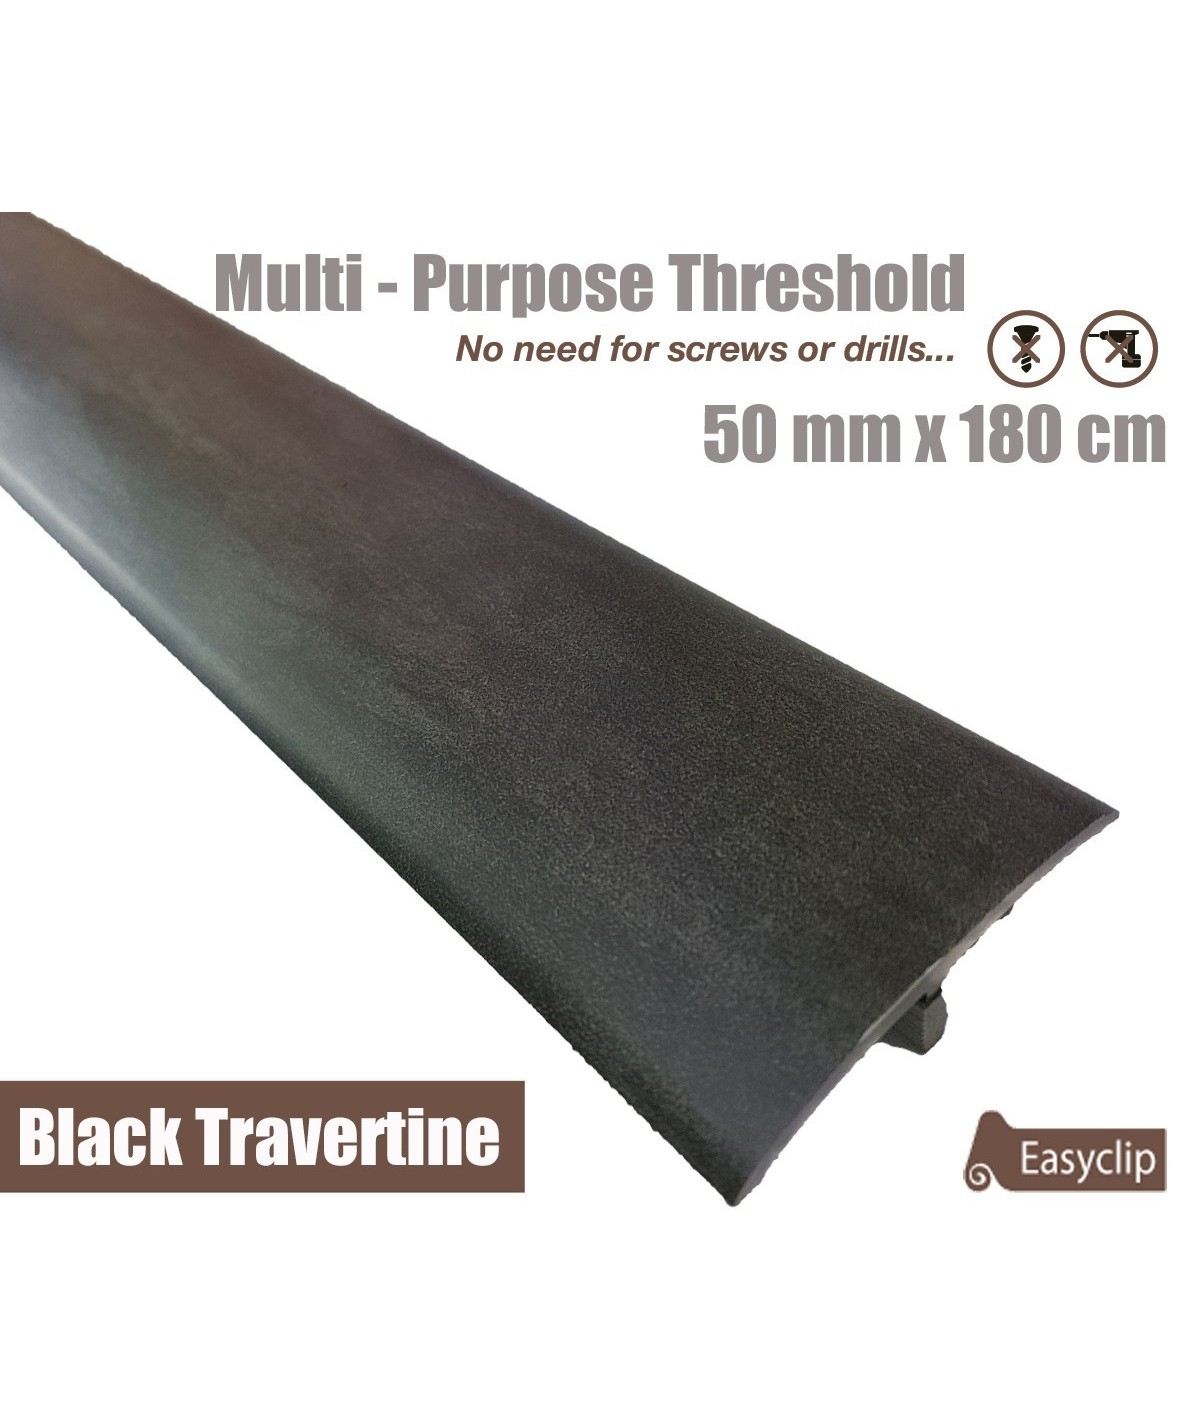 Black Travertine Laminated Transition Threshold Strip 50mm x180cm Multi-Height/Pivots